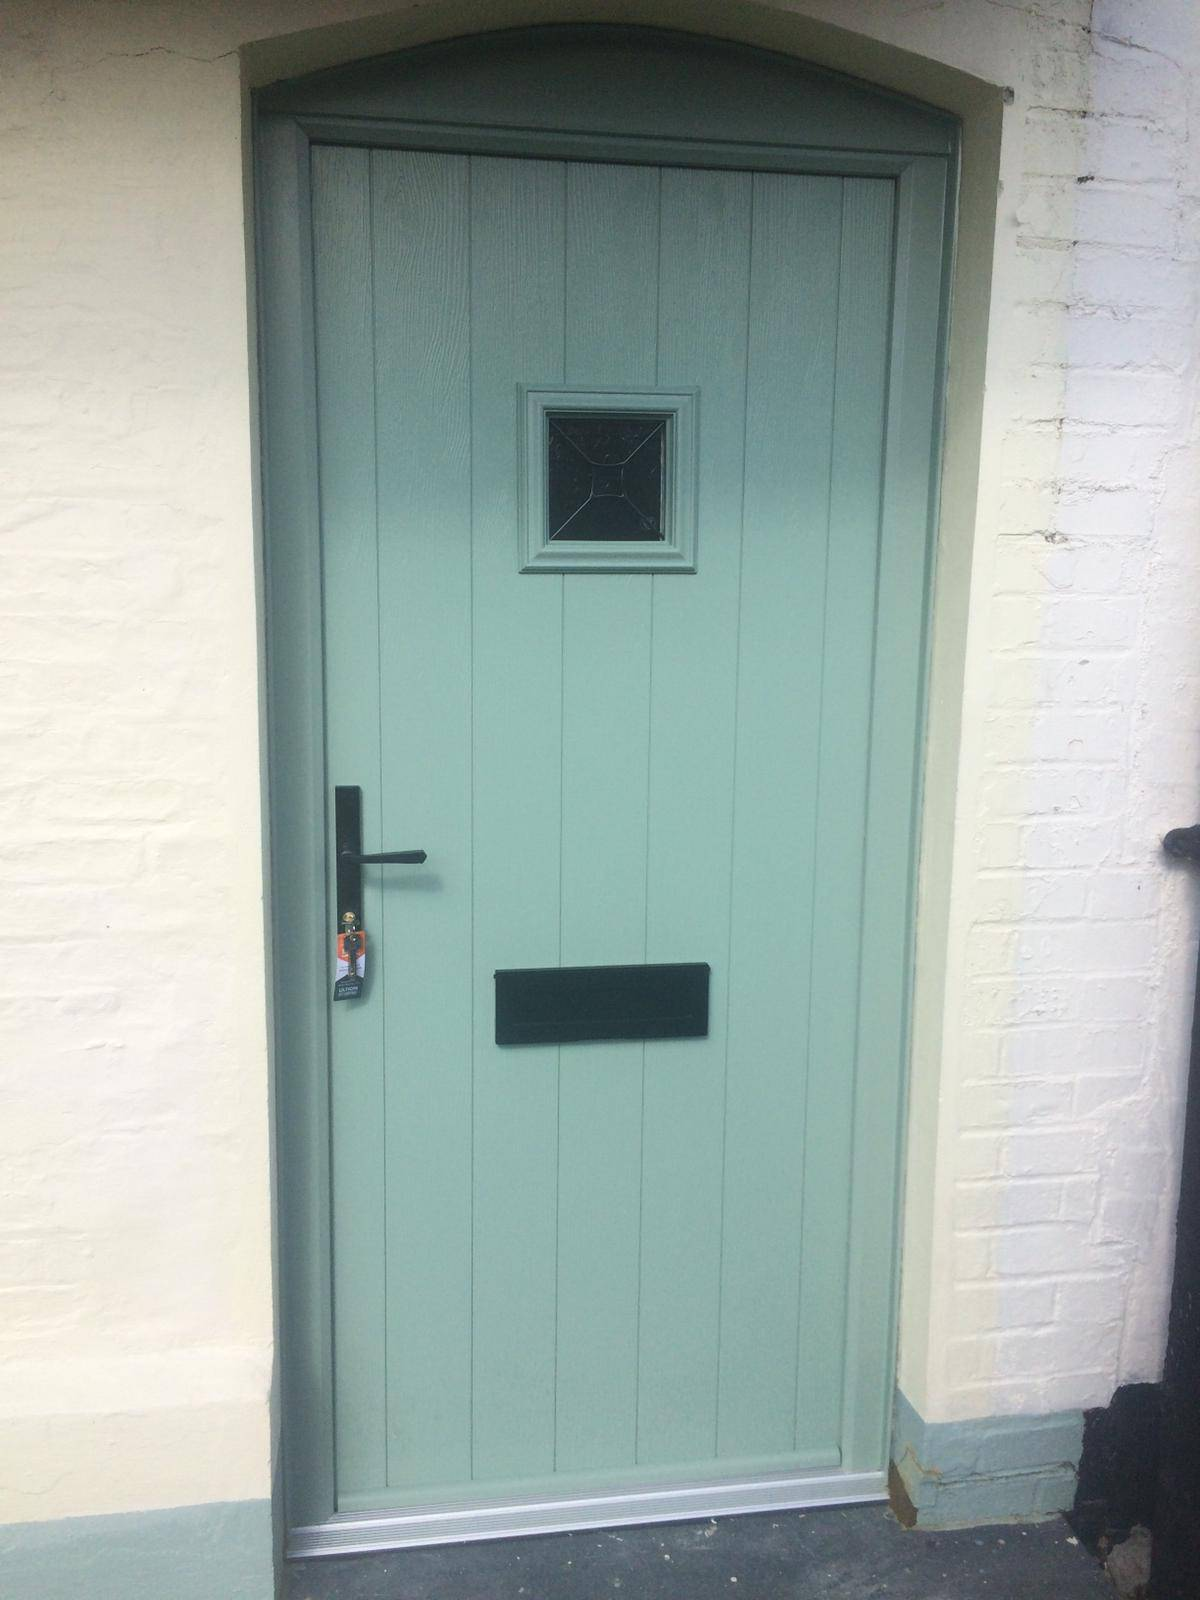 What Are The Average Composite Door Prices?